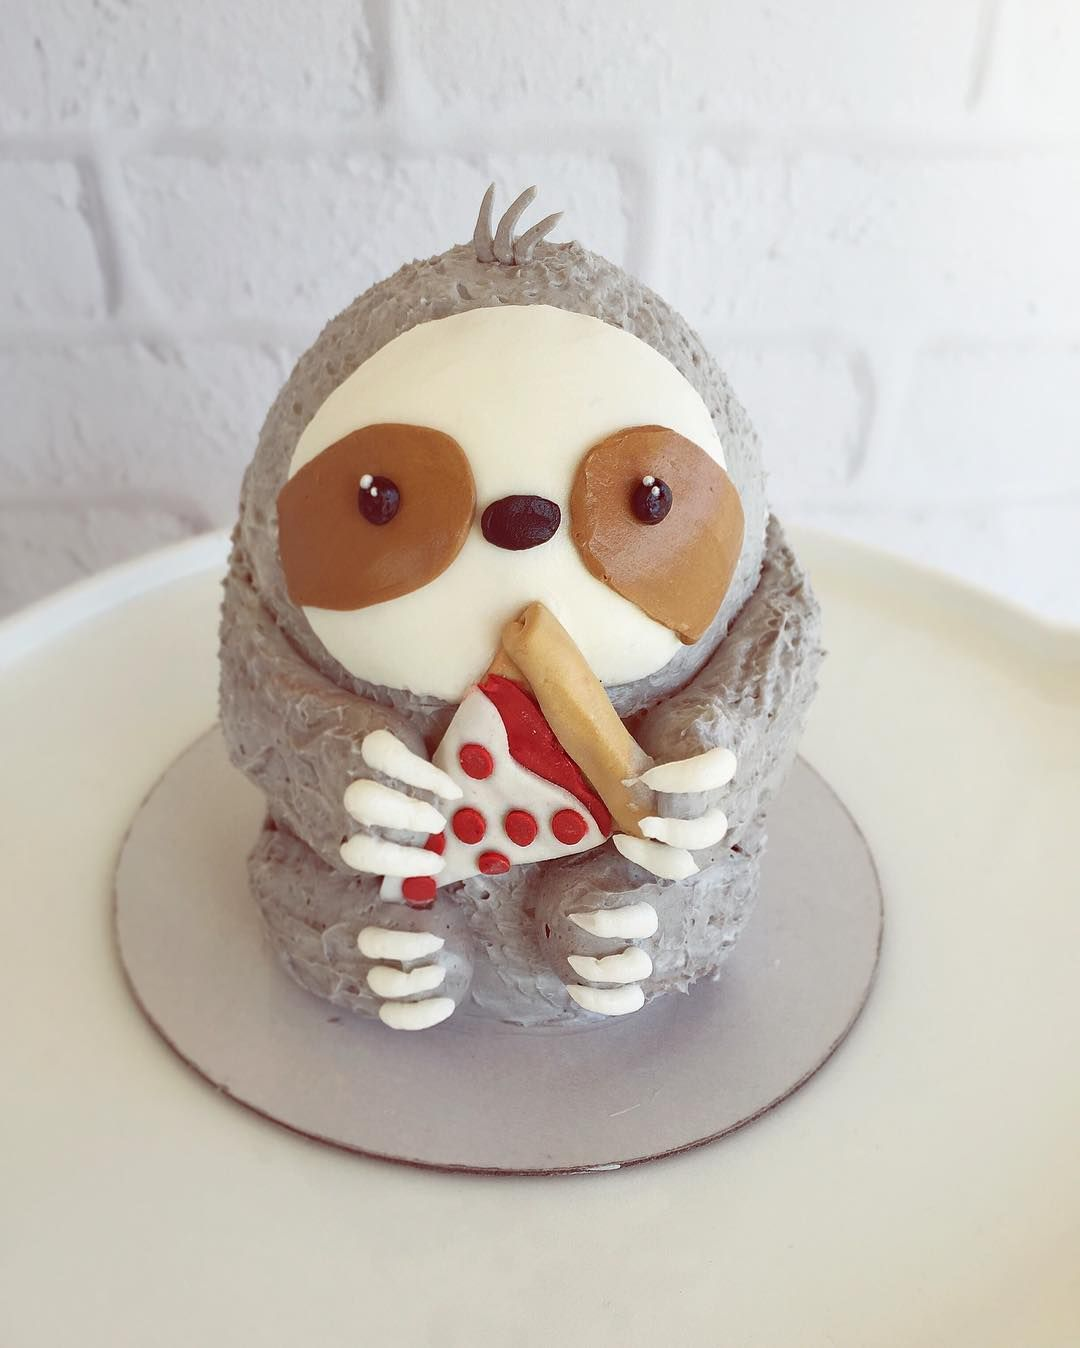 Sweettreats By Jen More Kids Cakes: Sloth Cake With Pizza Slice By _leslie_vigil_